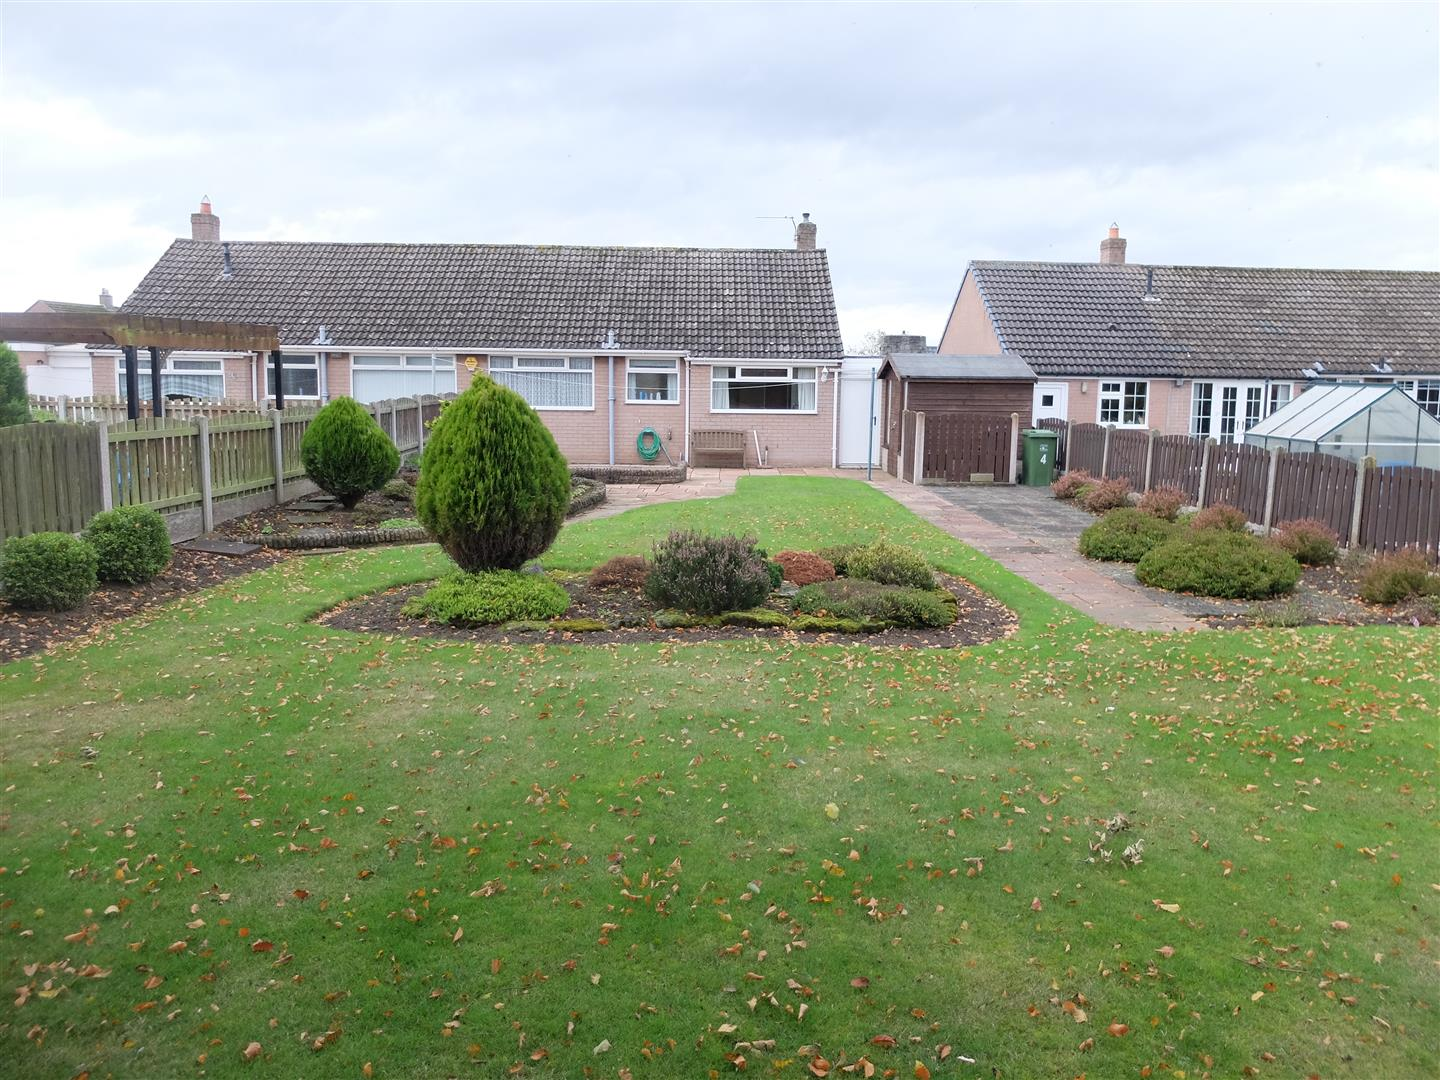 2 Bedrooms Bungalow - Semi Detached For Sale 4 Farbrow Road Carlisle